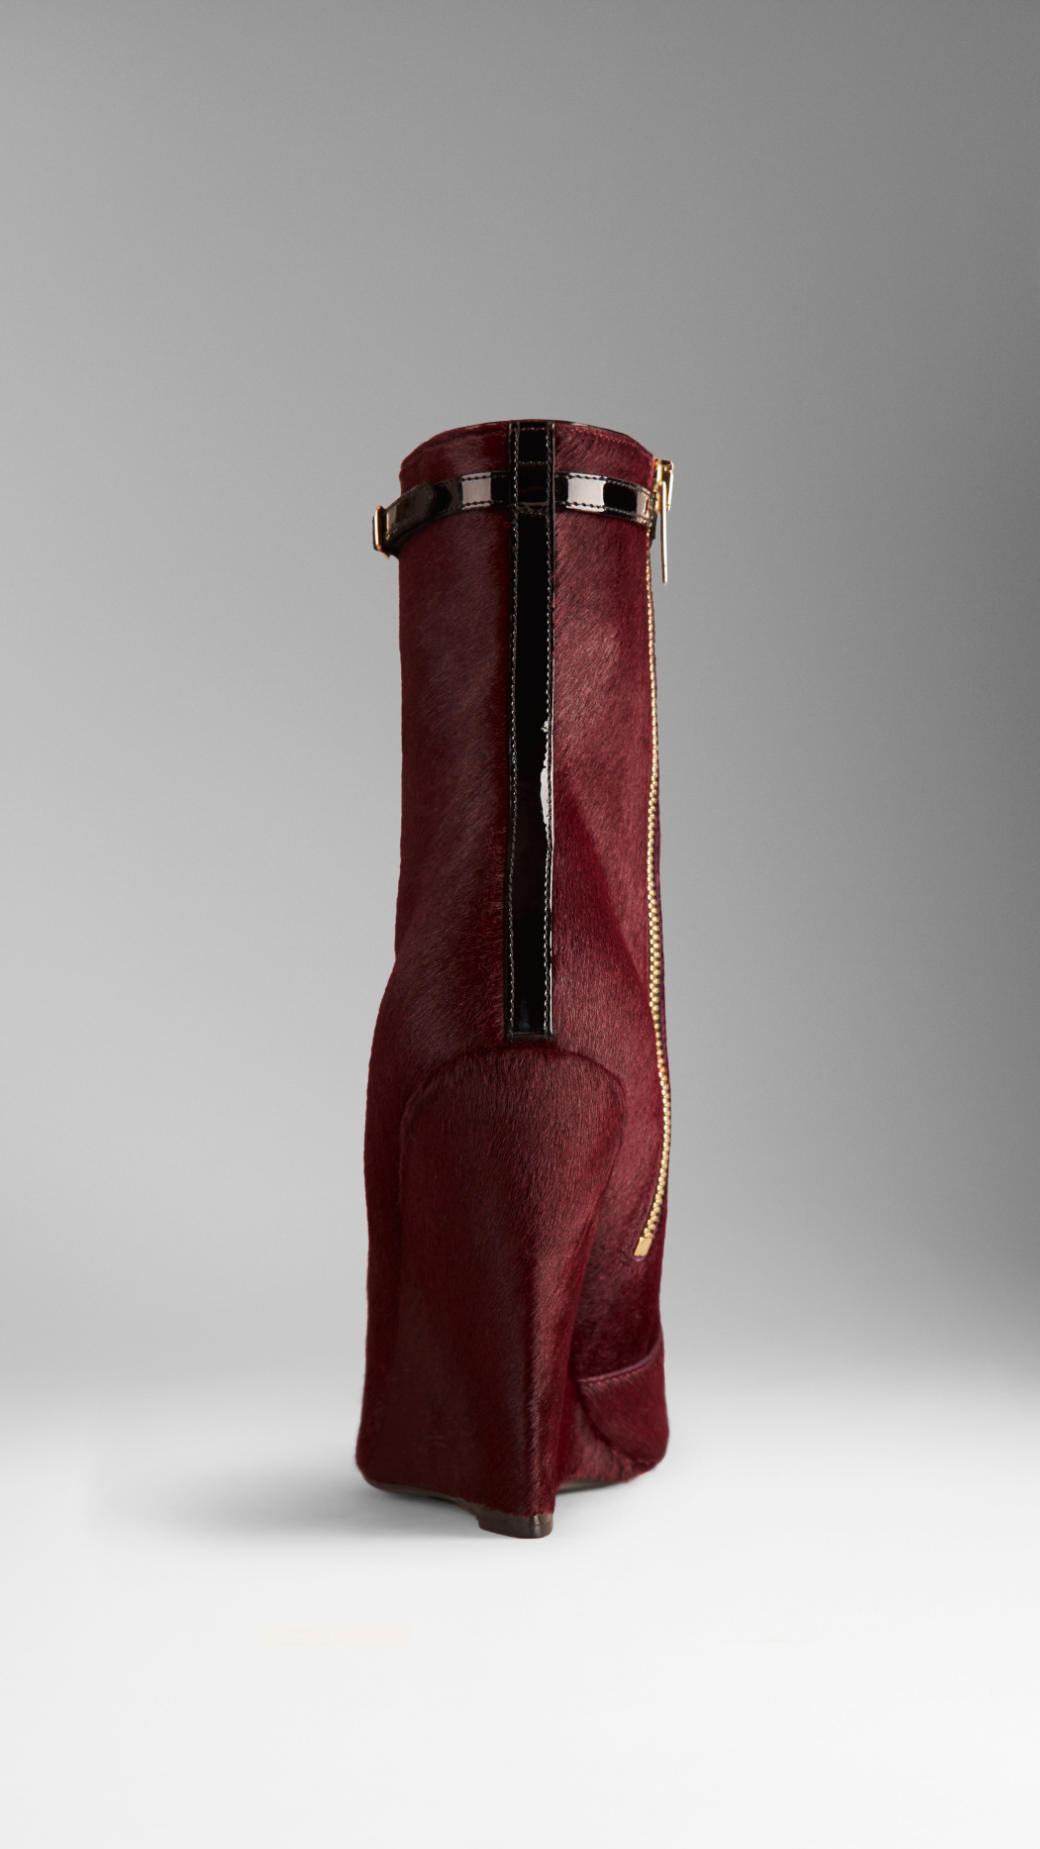 burberry patent calfskin wedge boots in